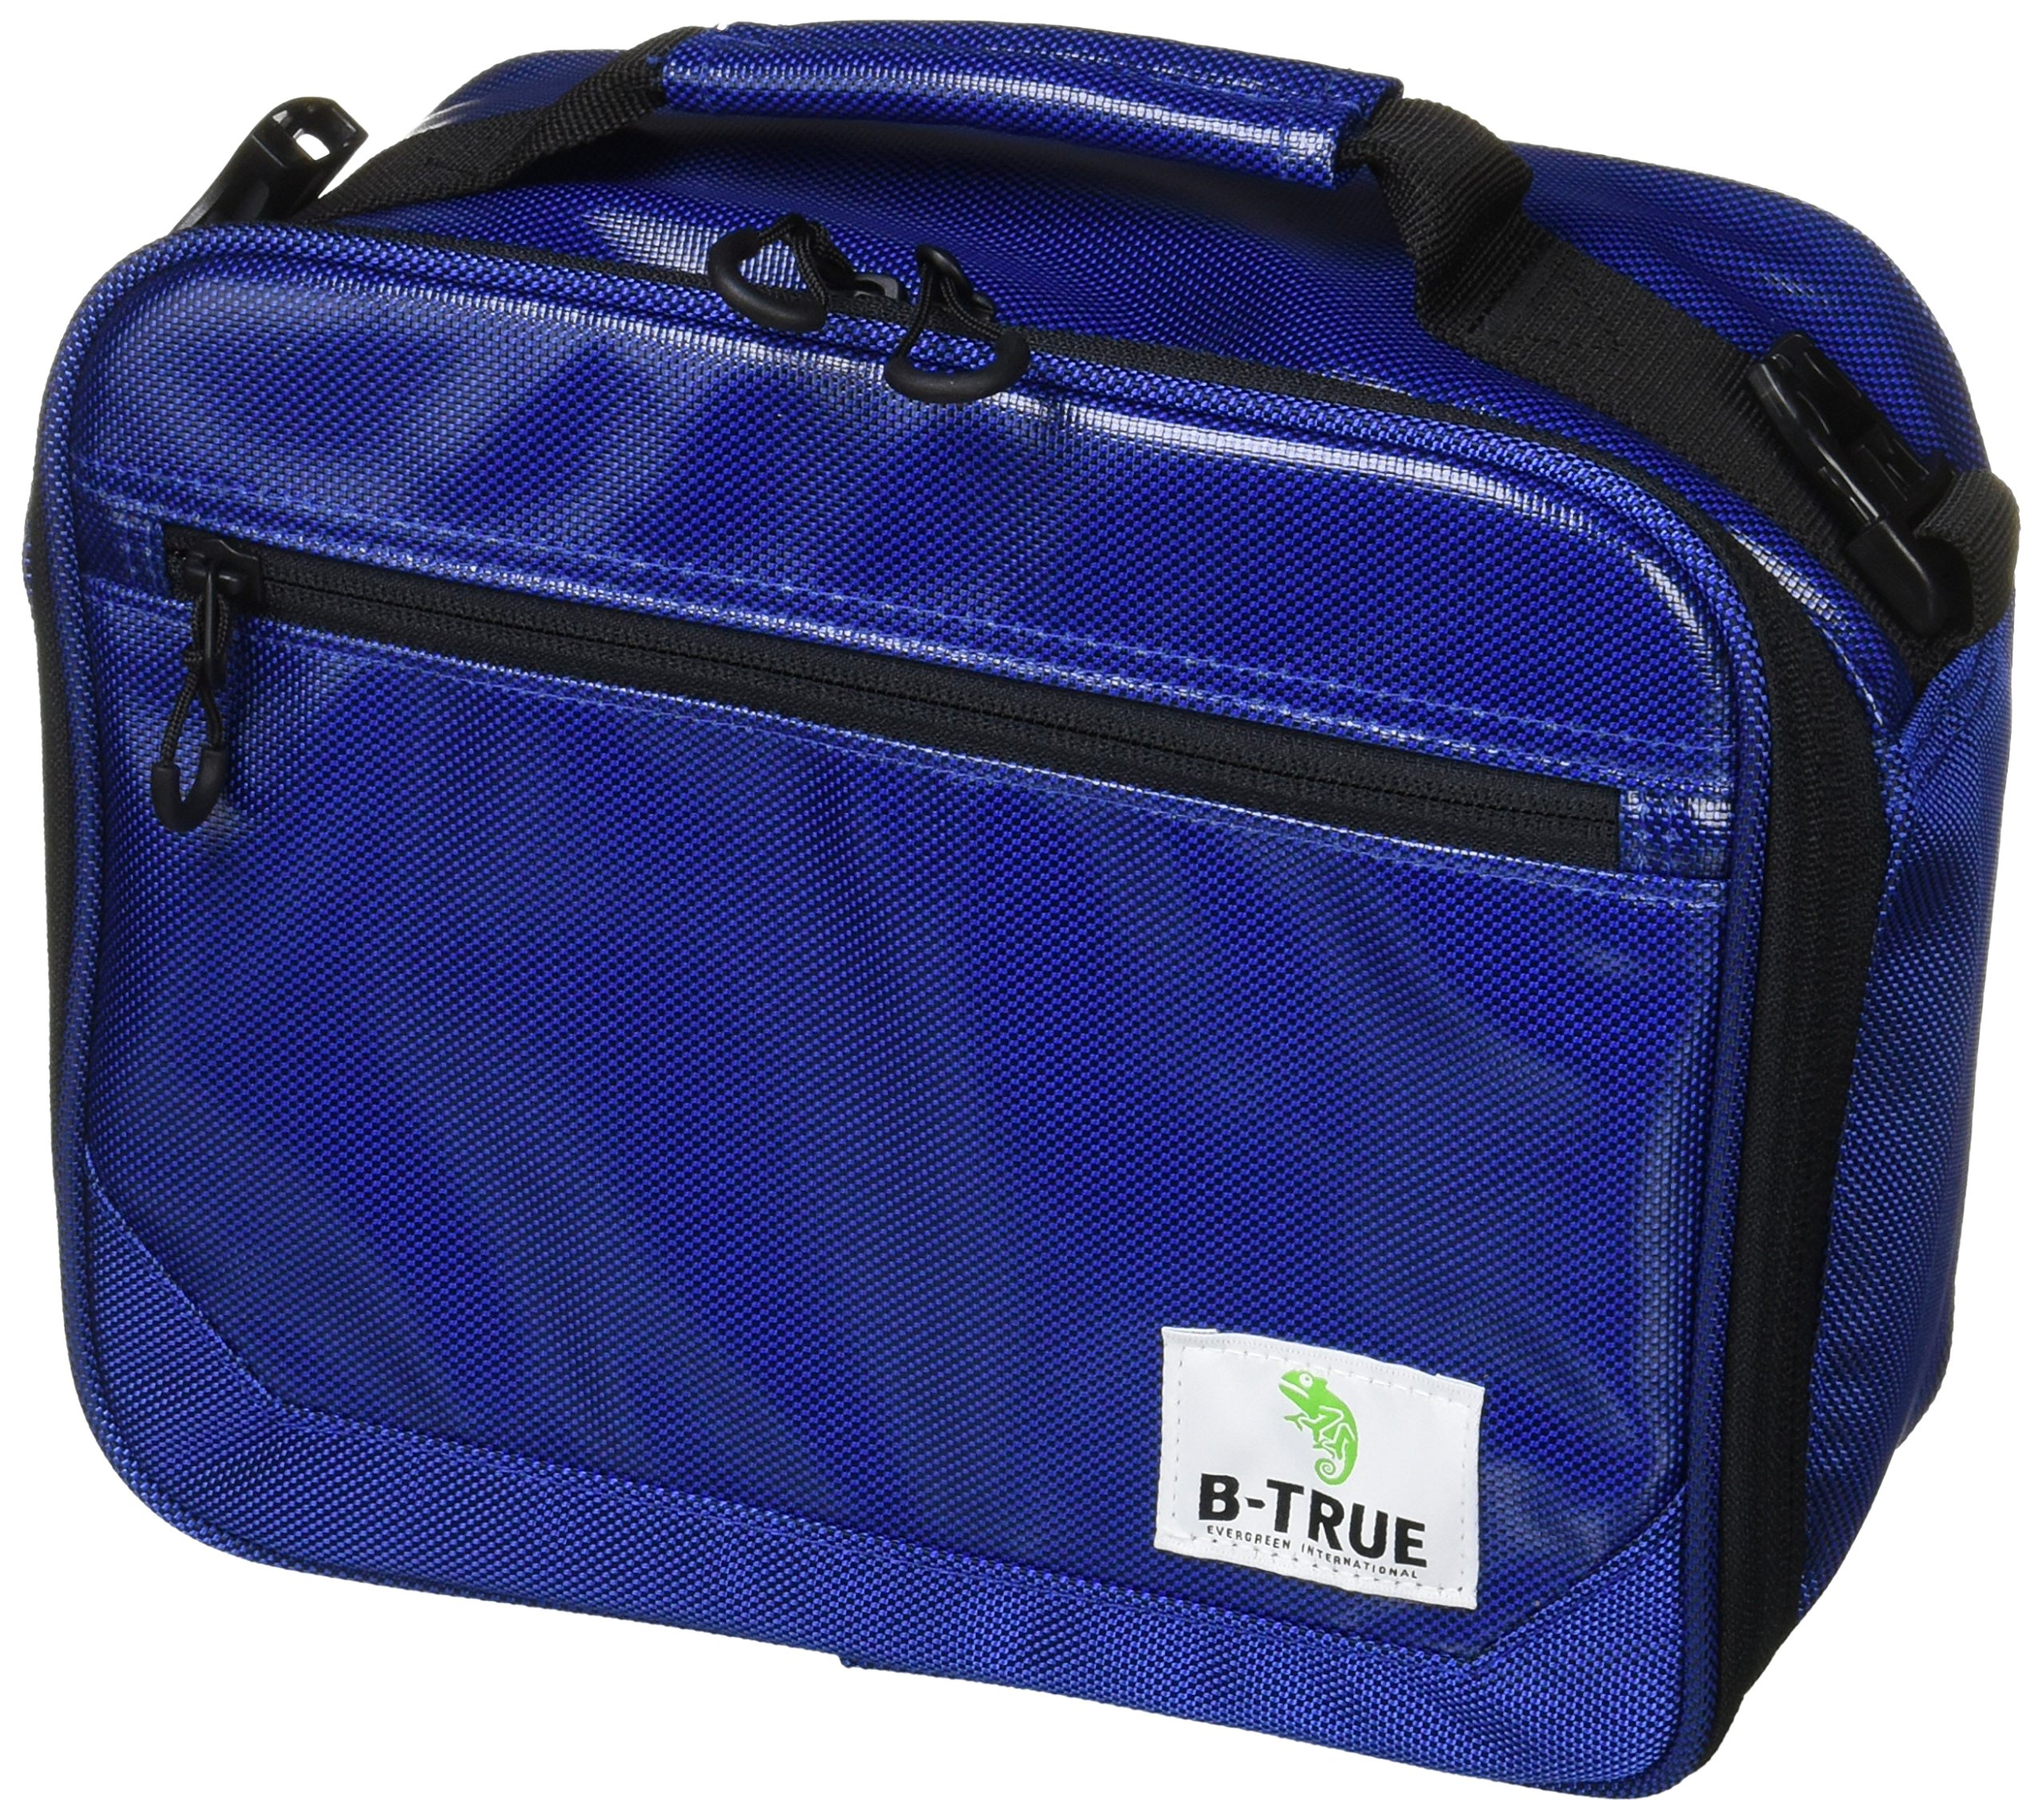 Evergreen B-True Protection Padded Bag W26 x H21 x D12cm Blue (7279) 4533625097279 by EVERGREEN